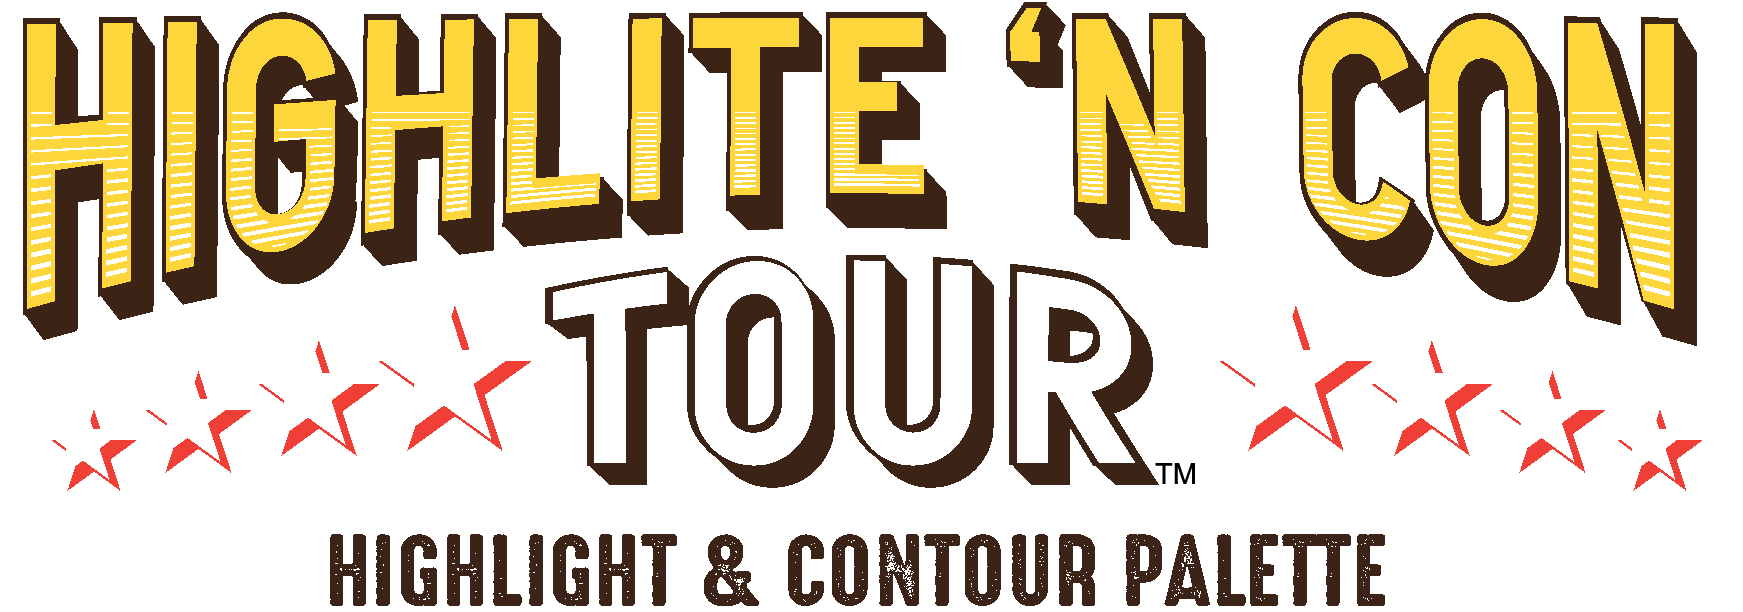 Highlite 'N Con Tour™ -- Highlight & Contour Palette